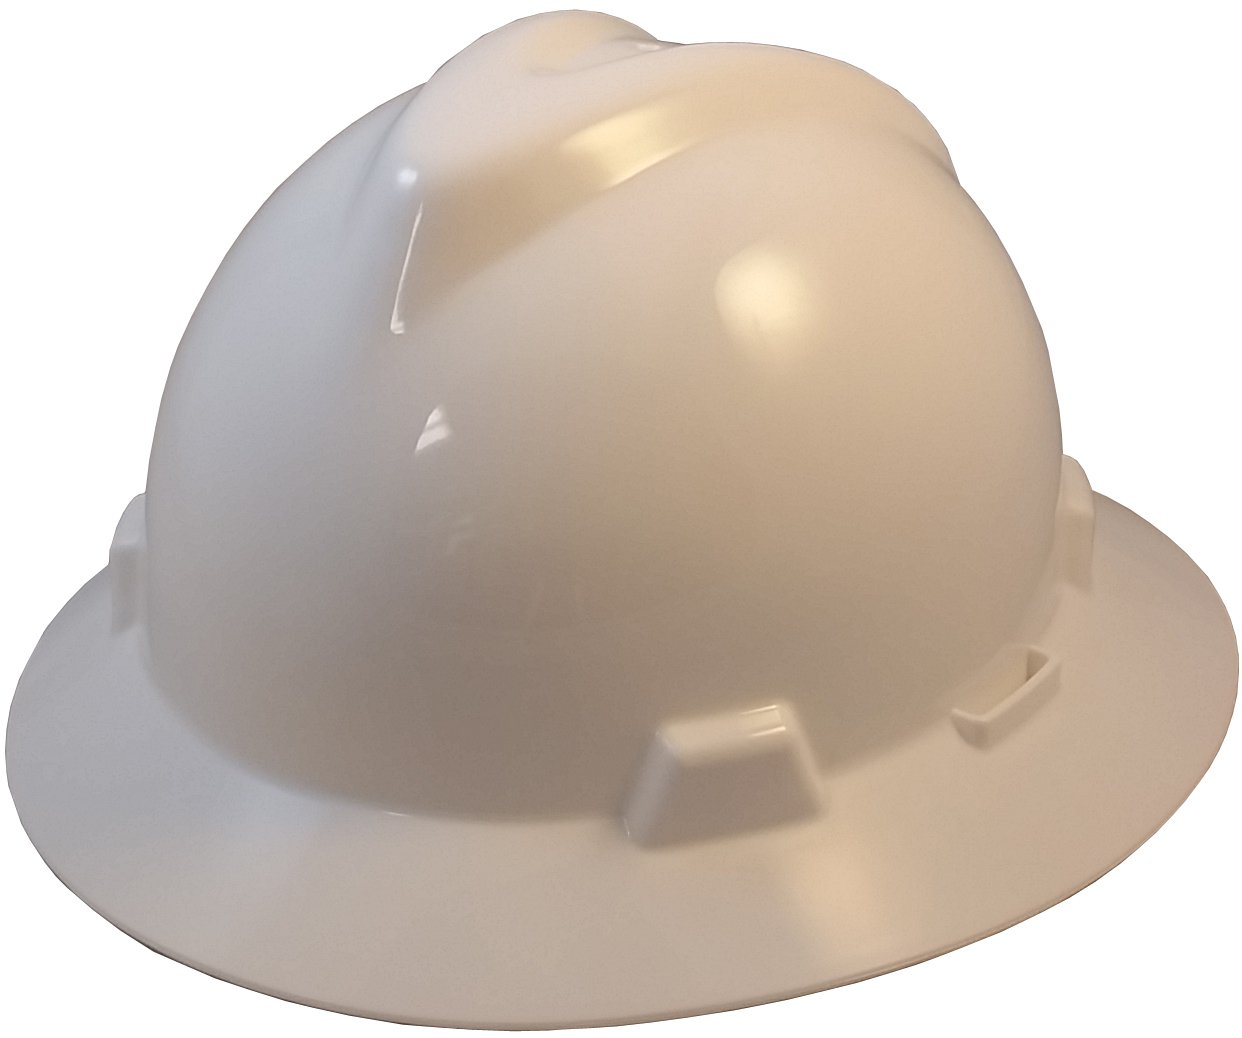 MSA V-Gard Full Brim Hard Hats w/ FasTrac III Suspensions with Handy Tote Bag - White